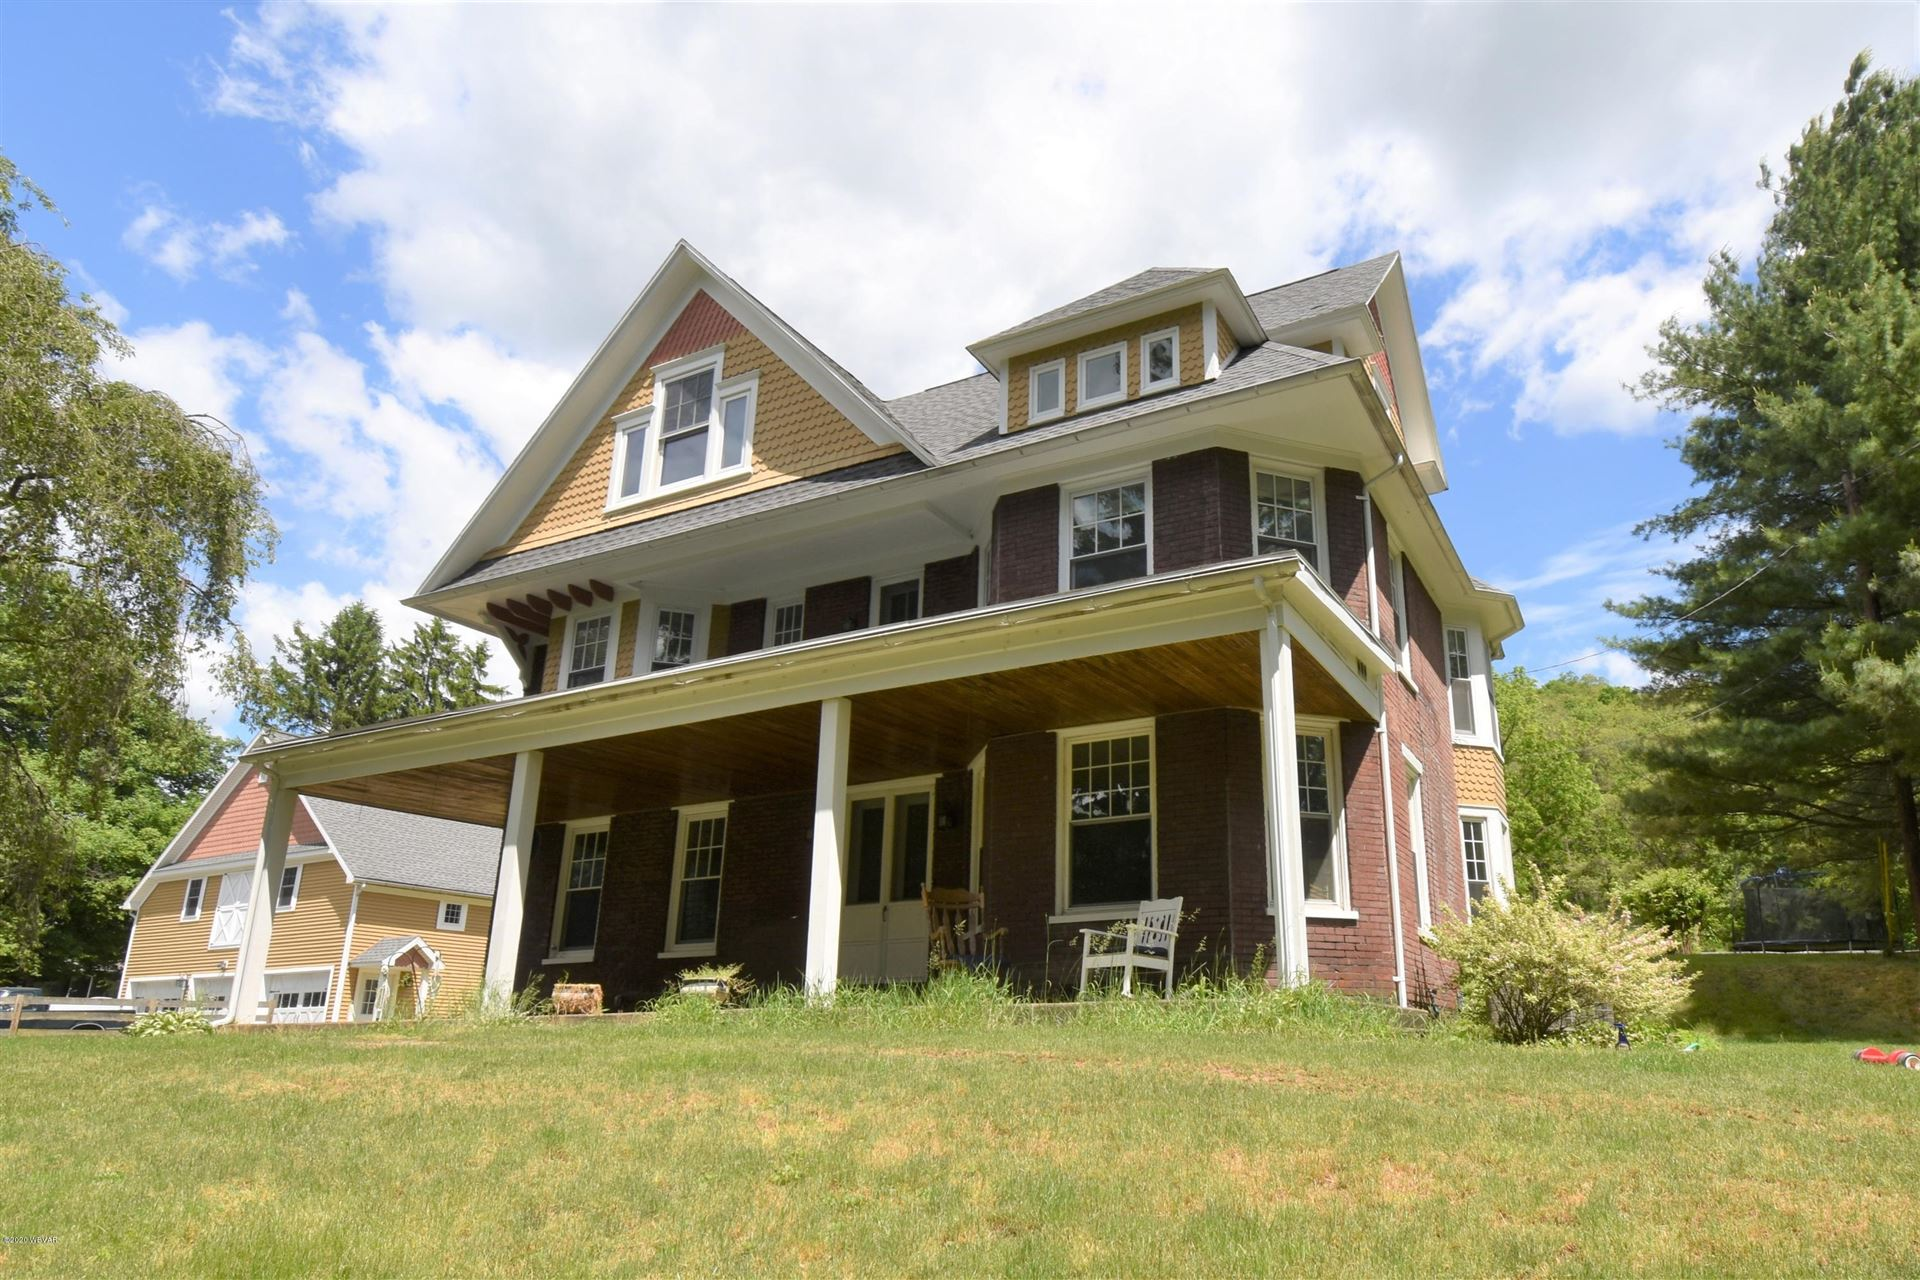 28 UPPERHILL DRIVE, Lock Haven, PA 17745 - #: WB-90204